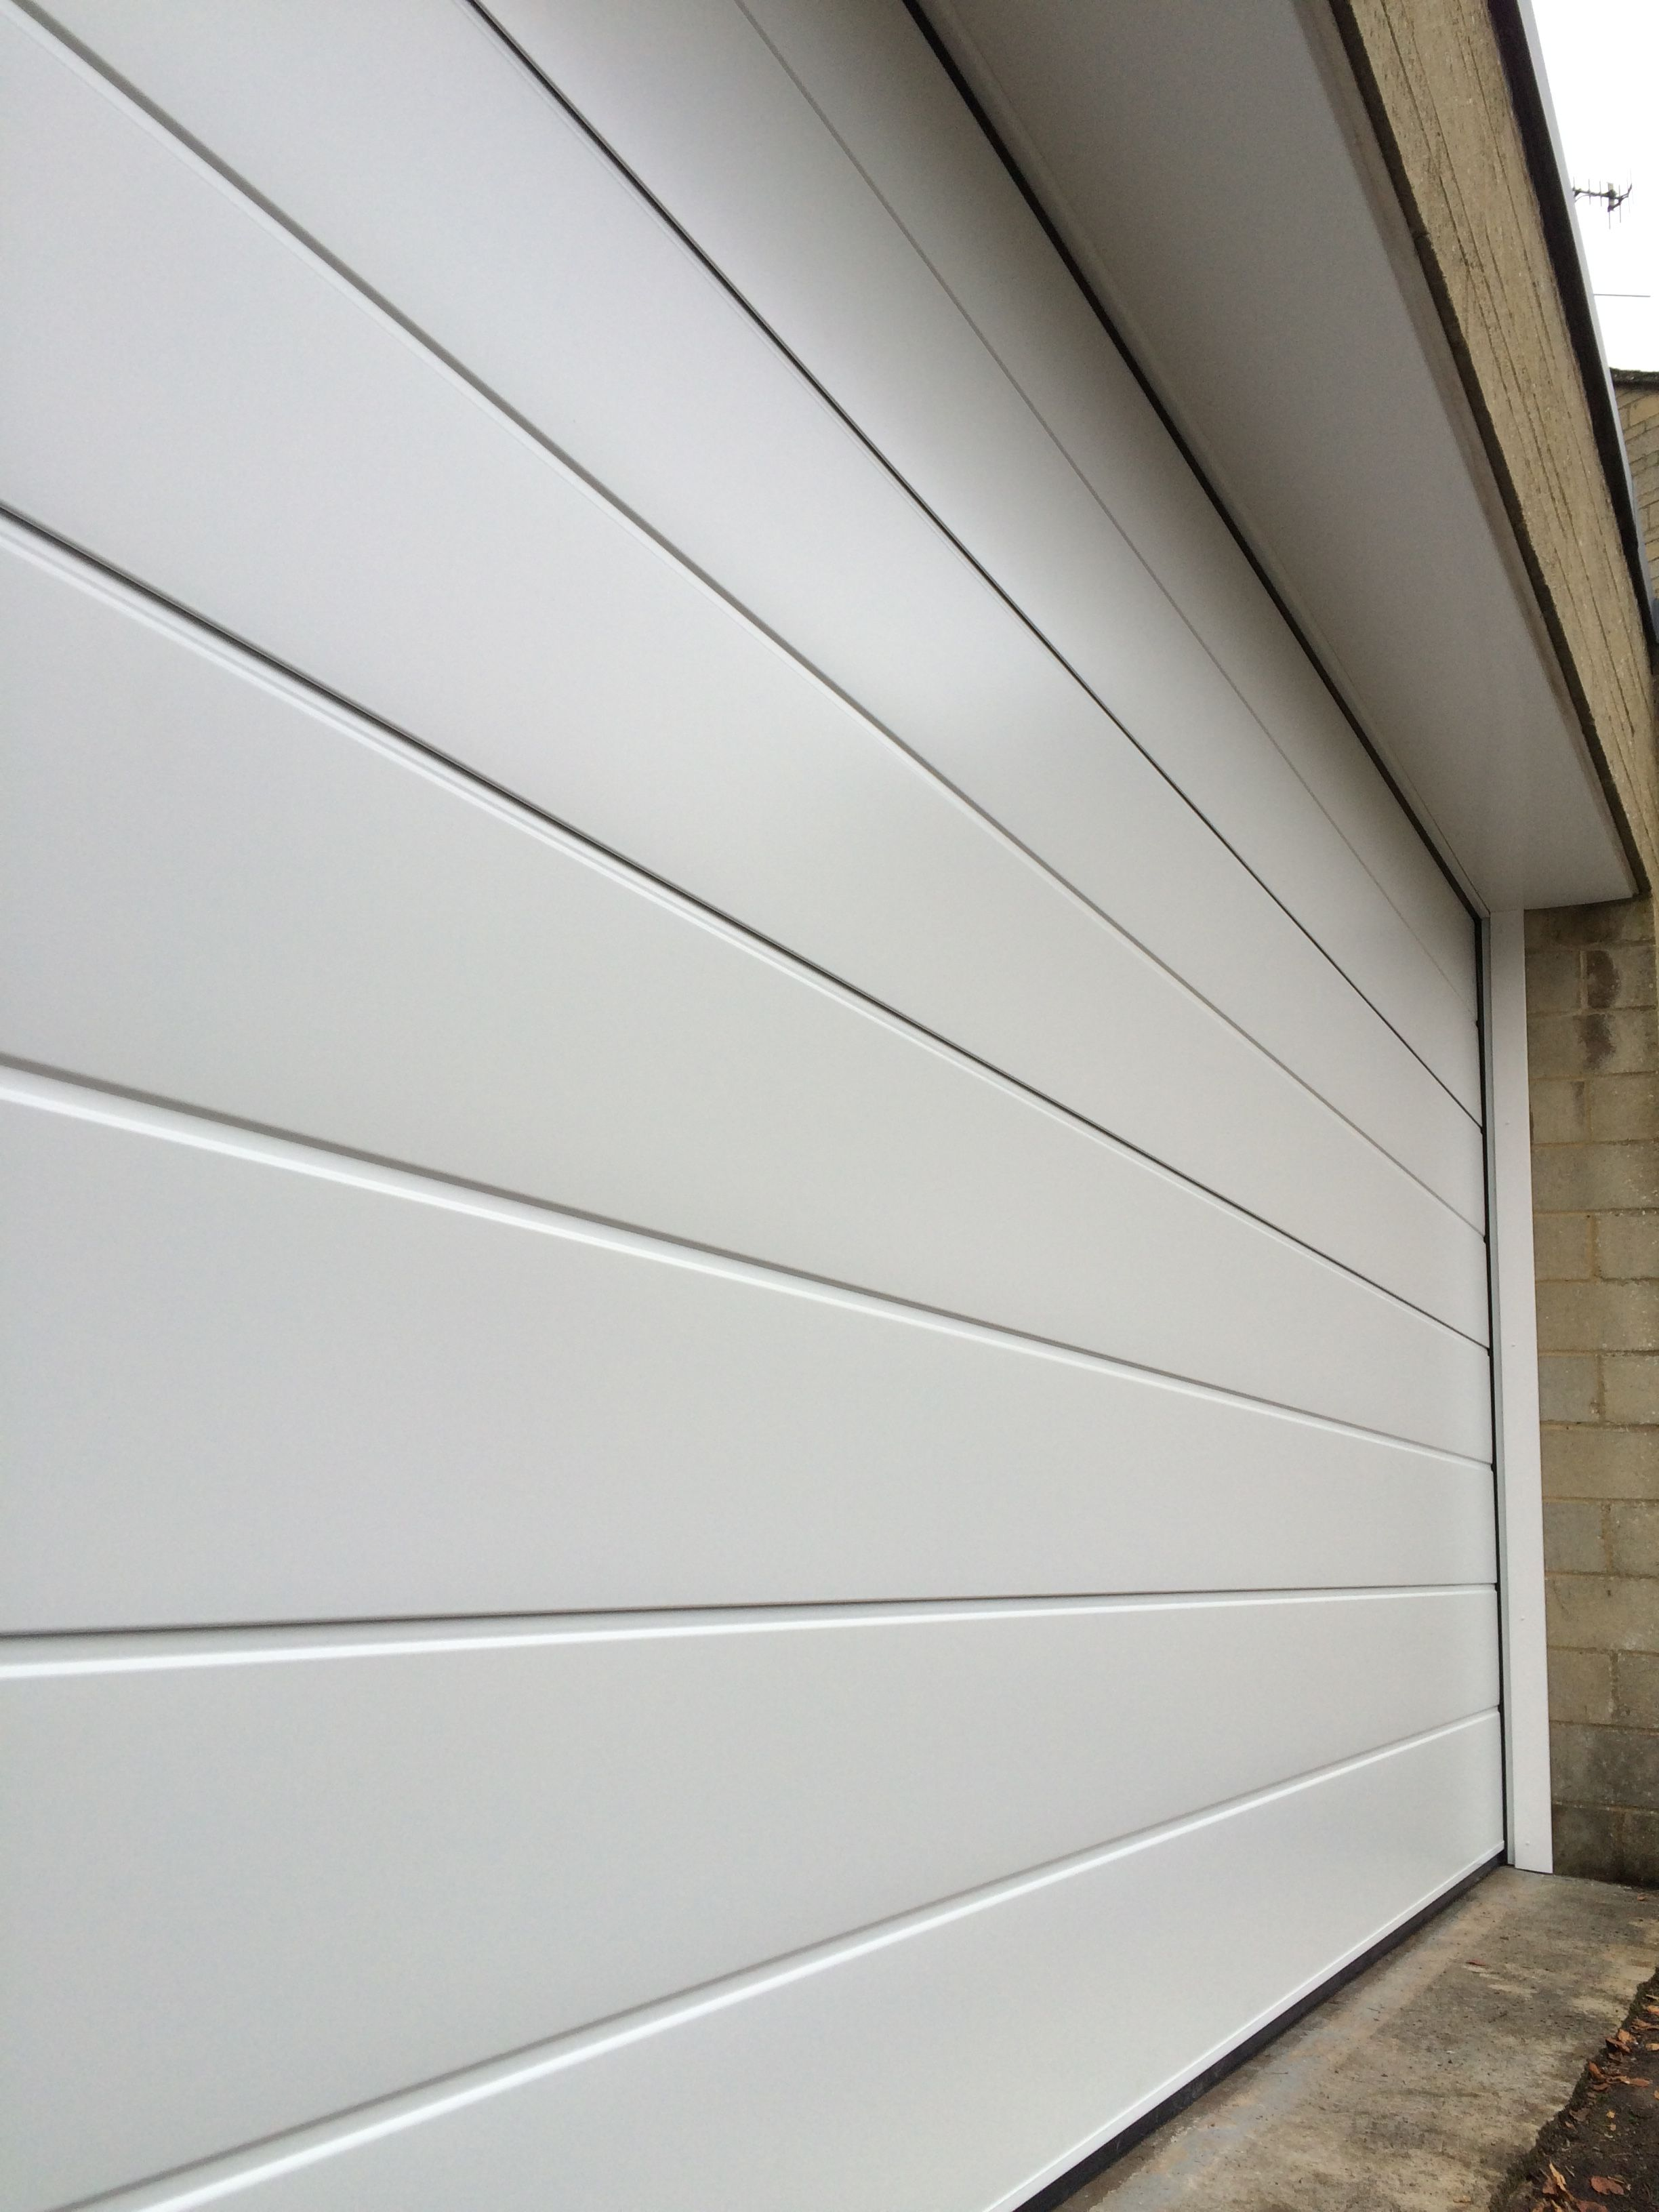 Sectional Garage Door Centre Ribbed Design Automatic Sectional